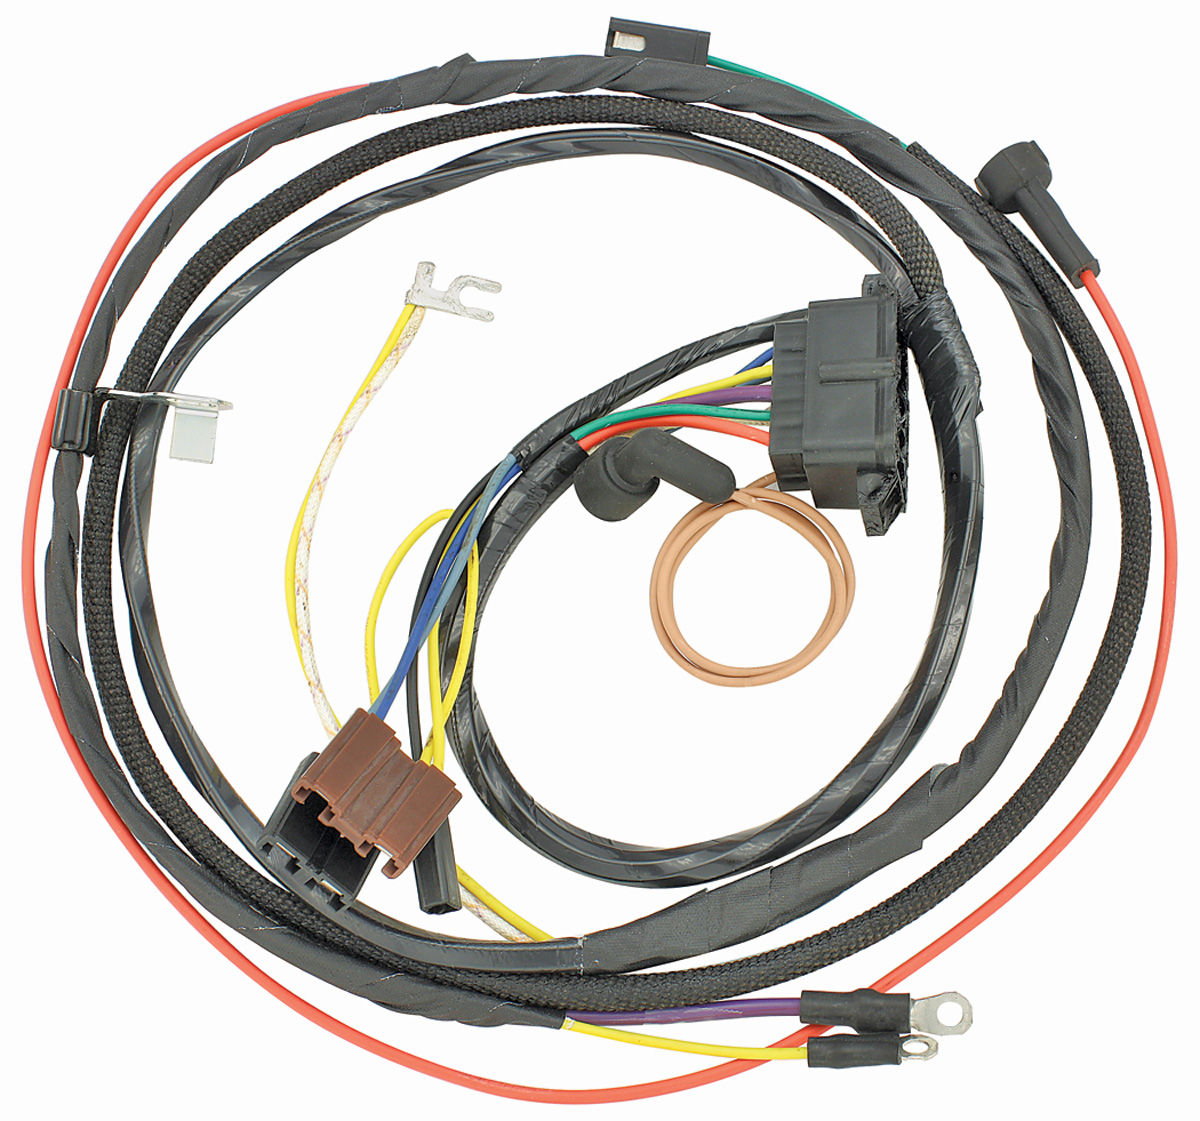 hight resolution of 1967 chevelle wiring harness wiring diagram online 1969 chevelle wiring harness 1967 chevelle wiring harness